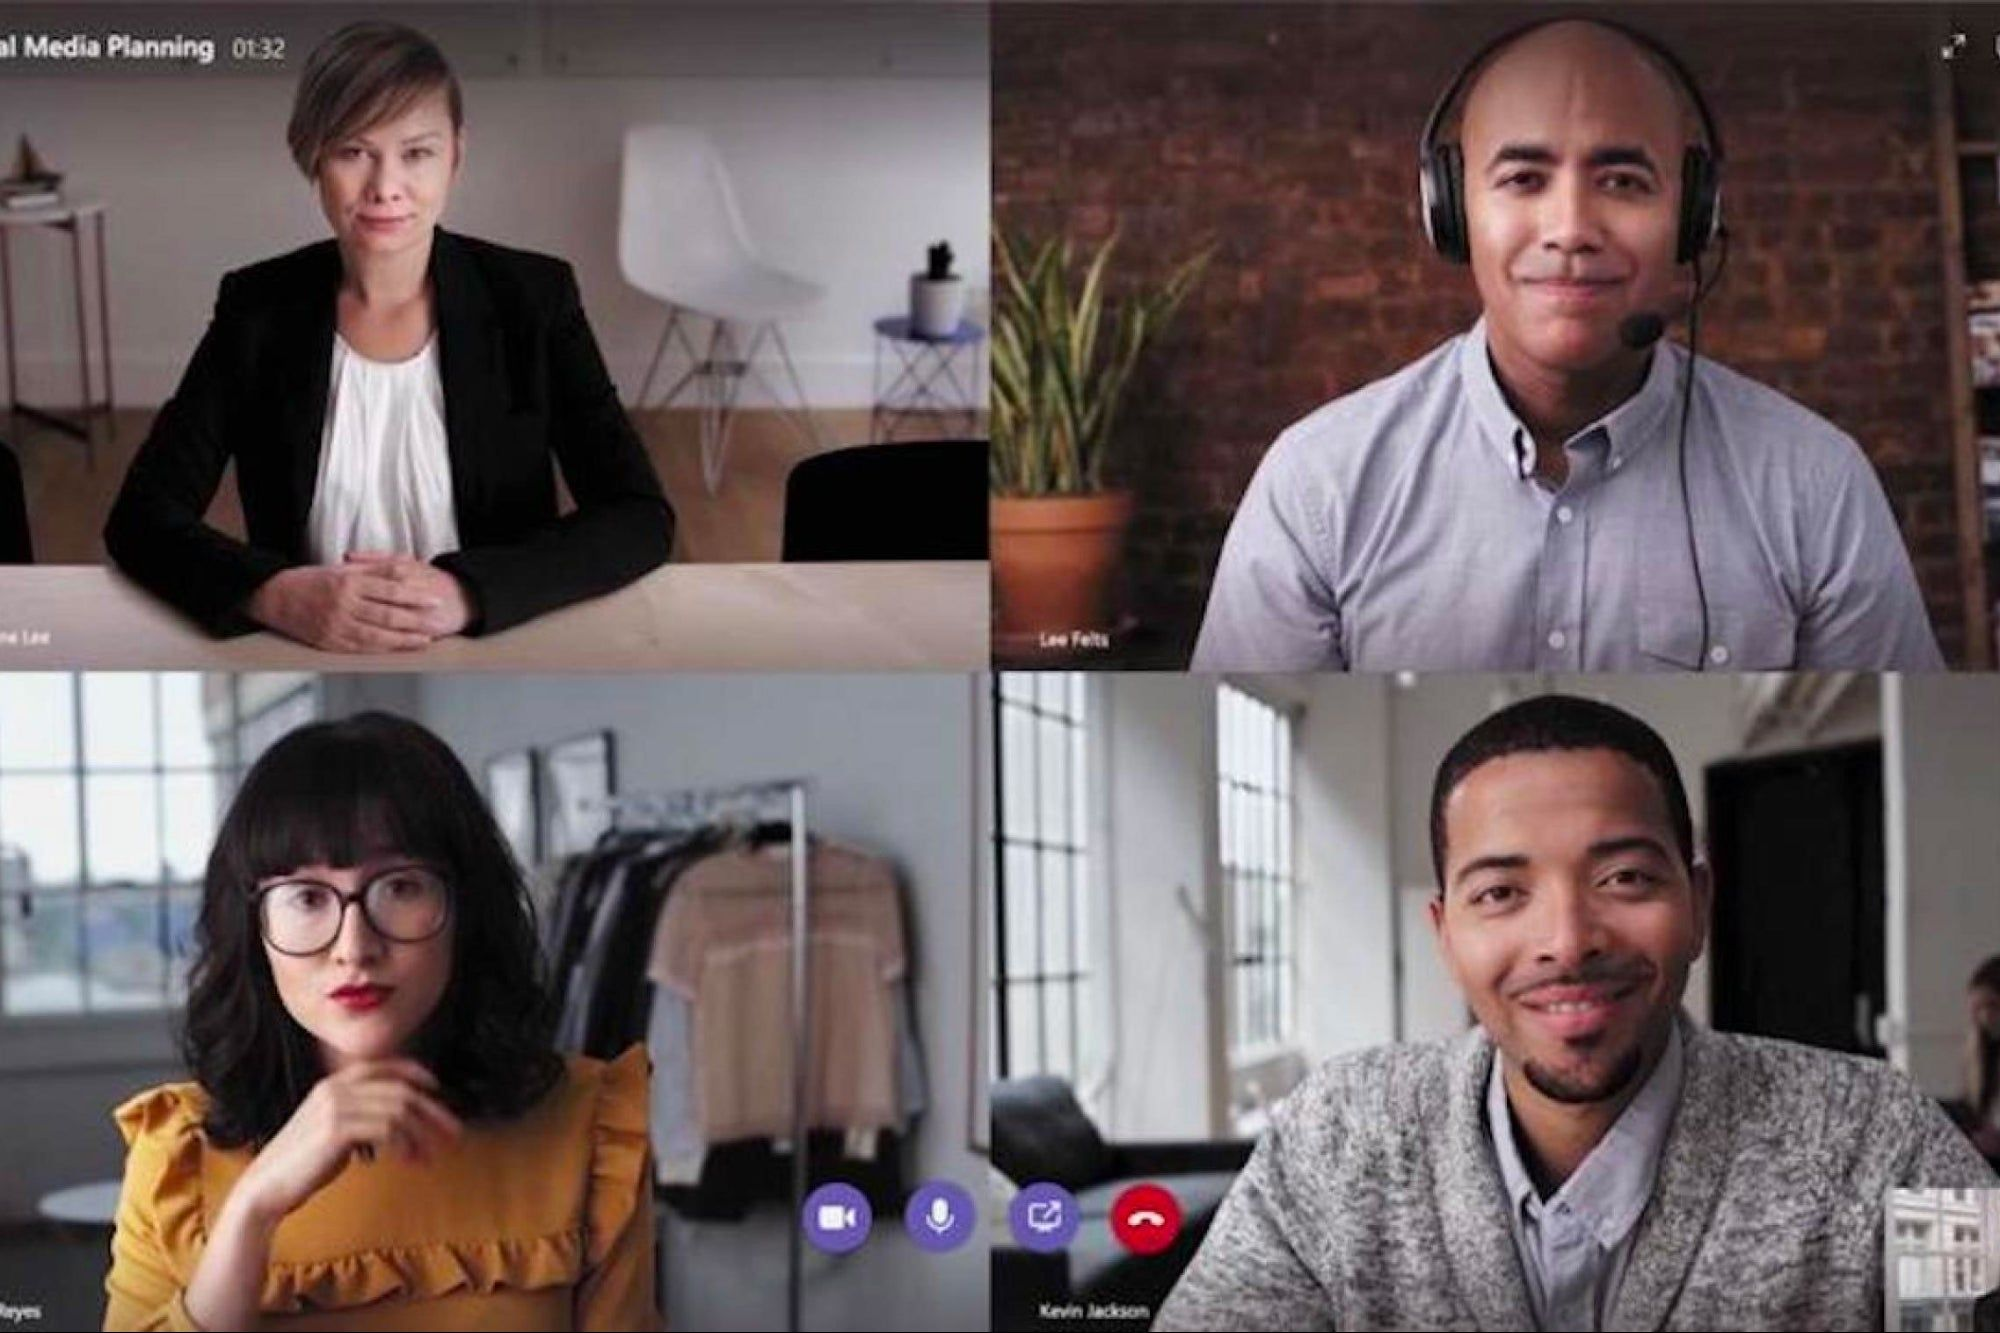 How to Change Your Background in Microsoft Teams in 2020